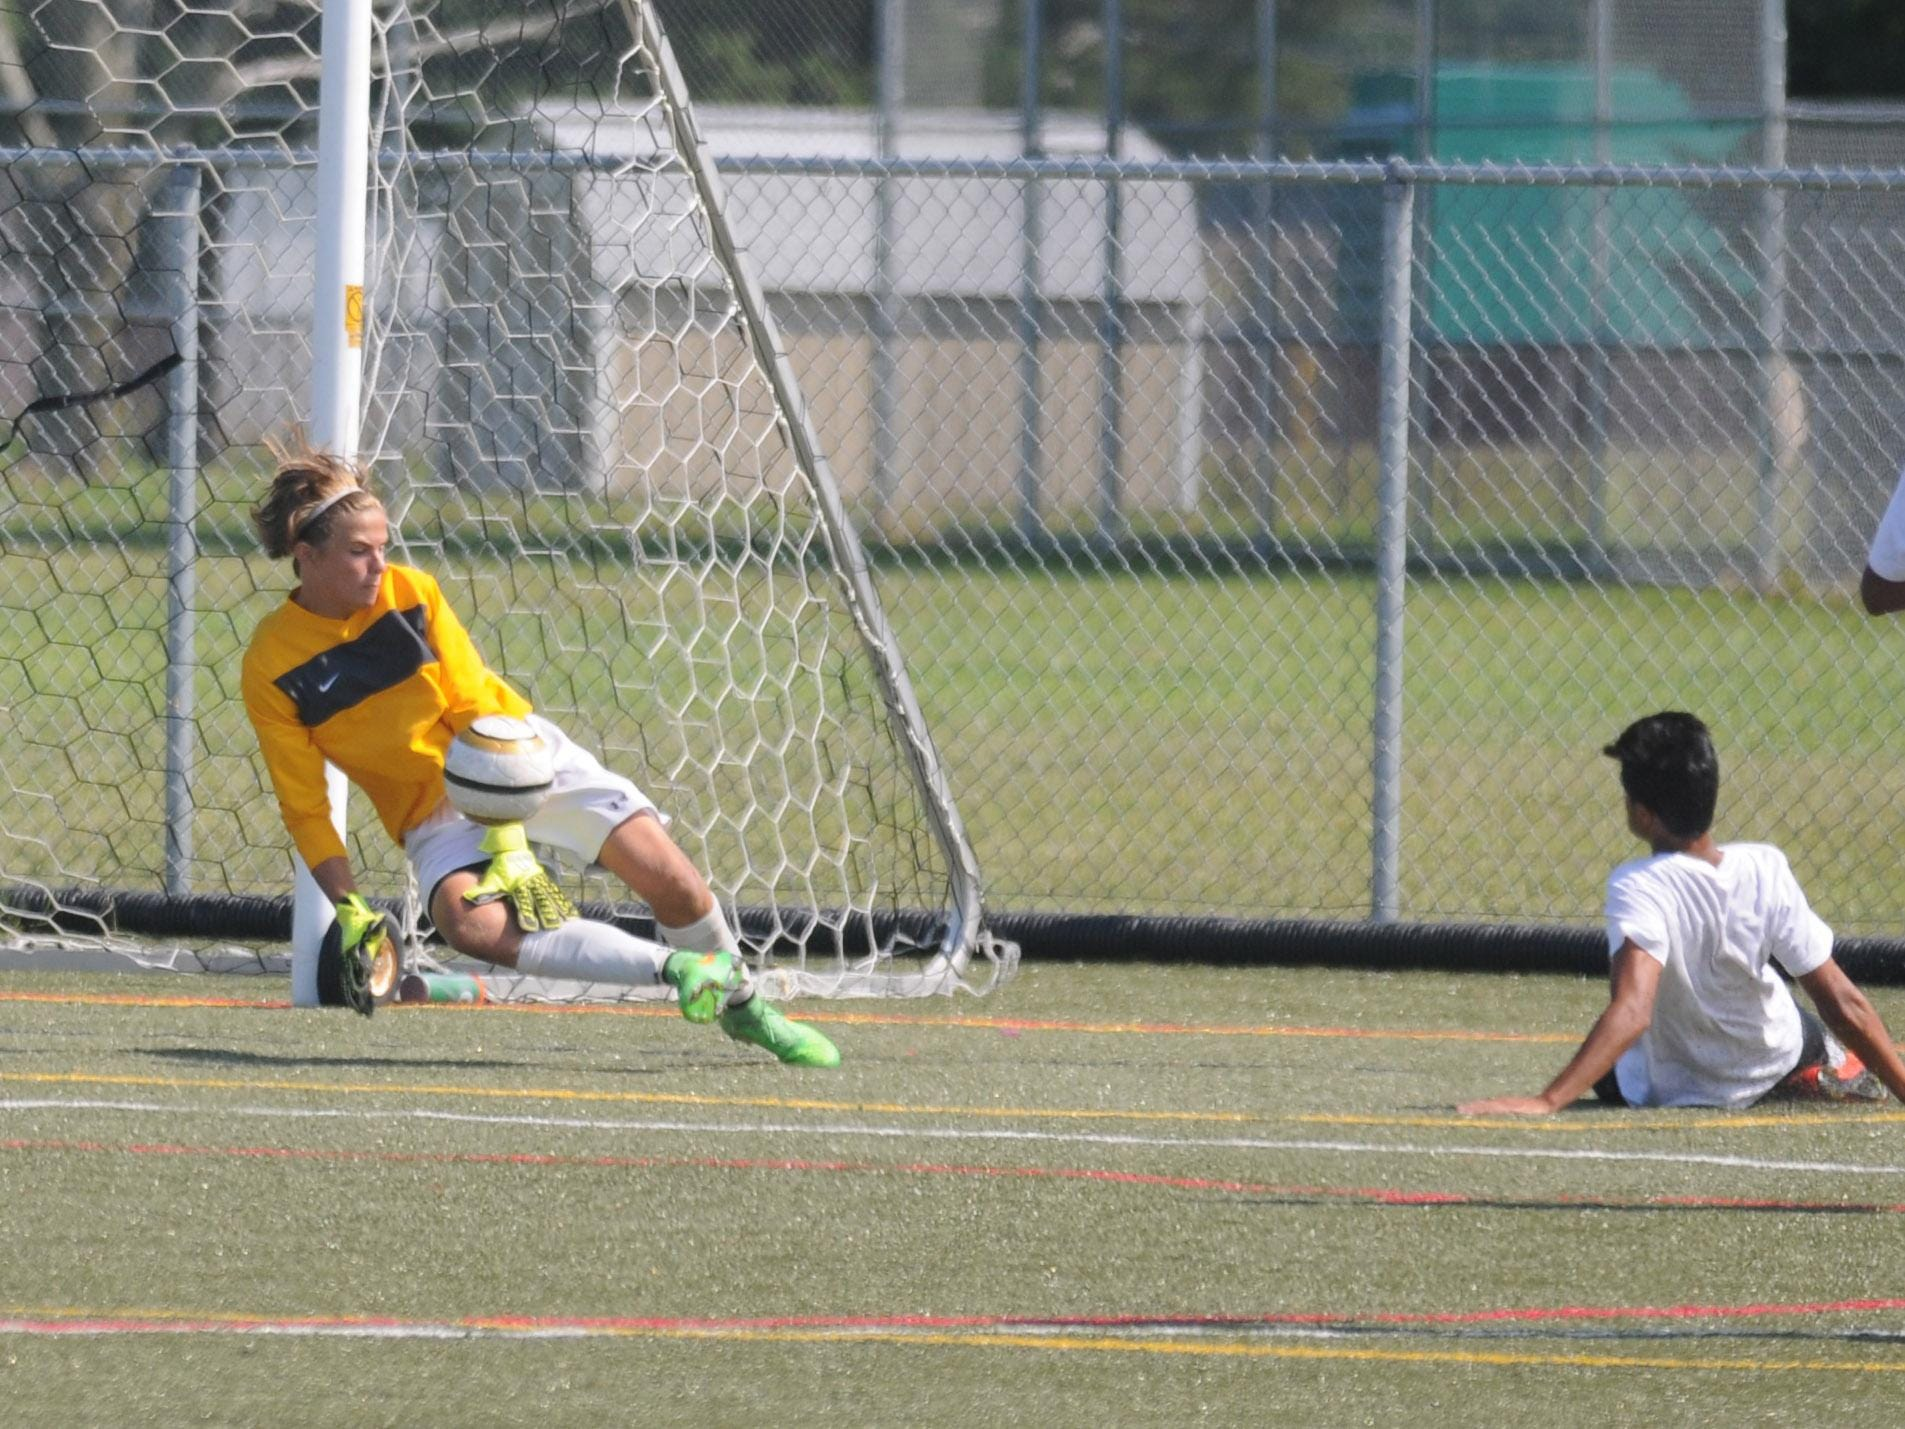 The Stephen Decatur goalkeeper comes up with a save against Indian River during the Cape Henlopen play day.